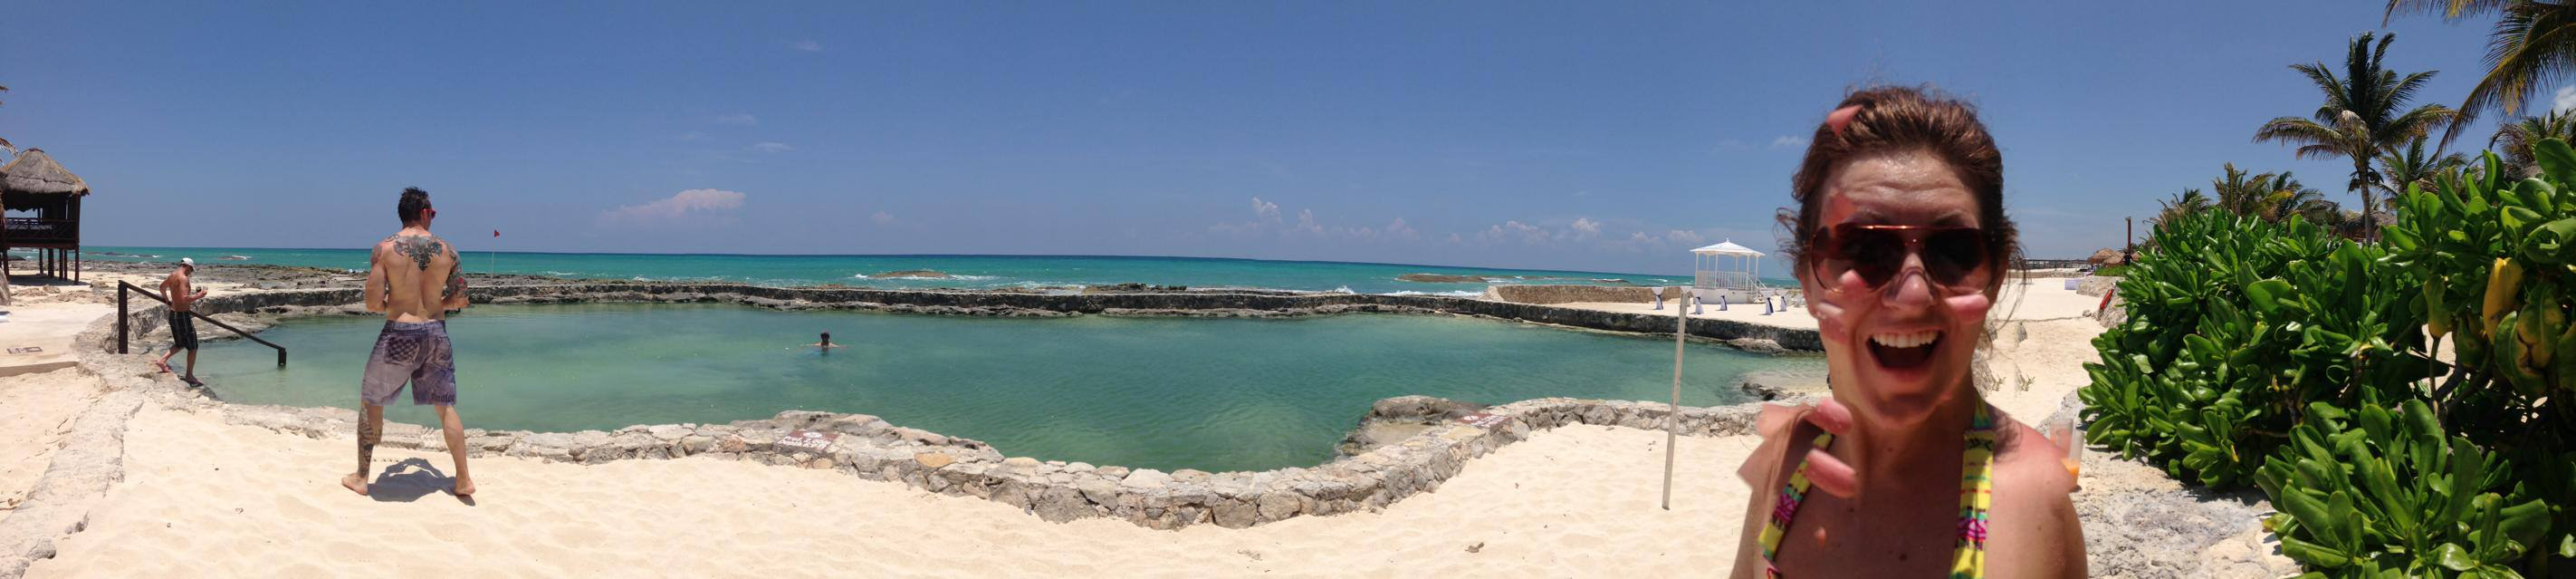 panoramic with the ocean-pool, pool-ocean. meet Carra and Tommy. Tommy is not peeing.